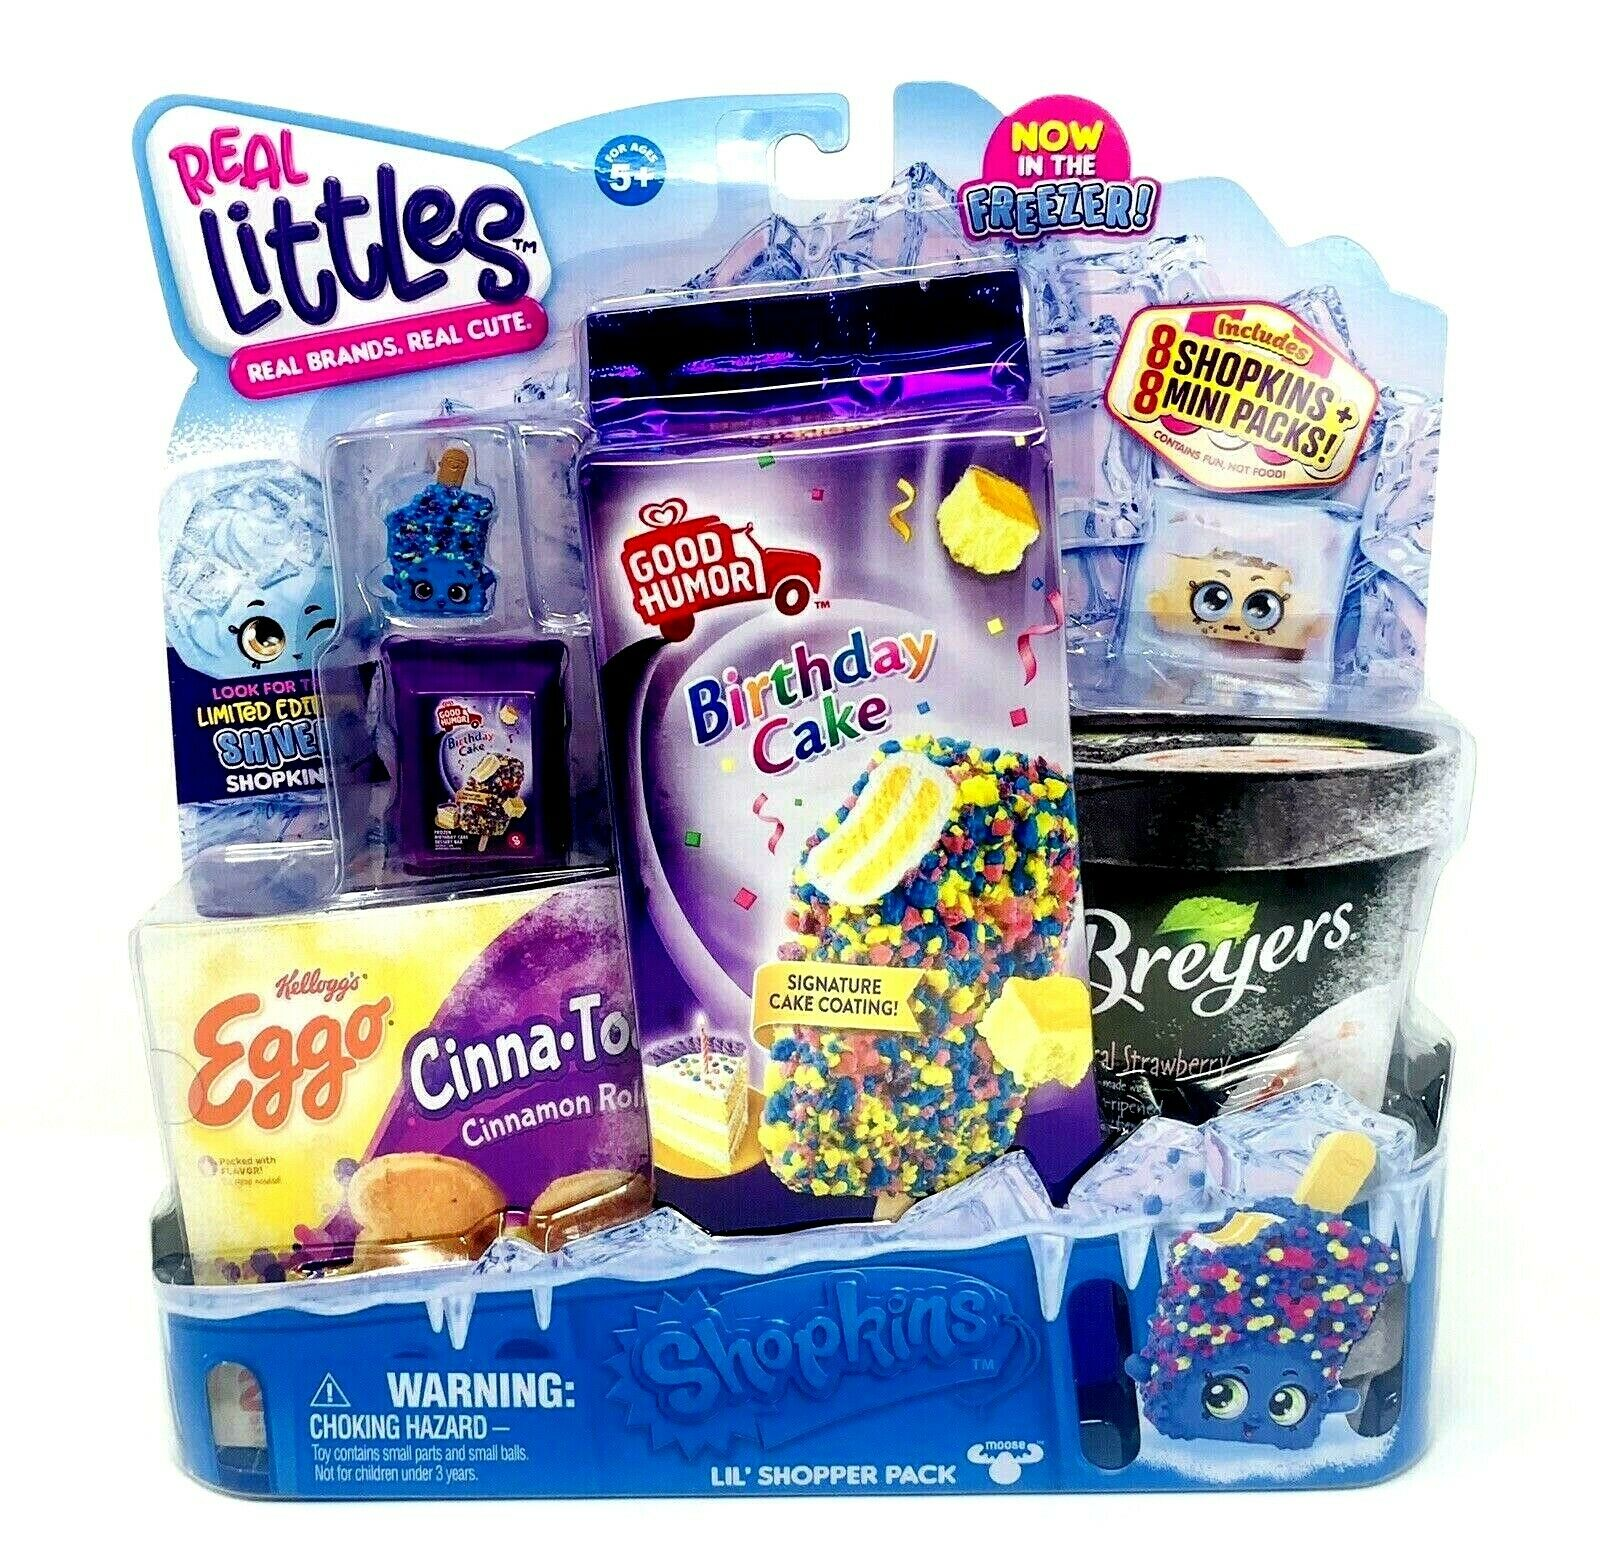 Shopkins In The Freezer Real Littles Shopper Pack Good Humor Birthday Cake NIB - $22.94